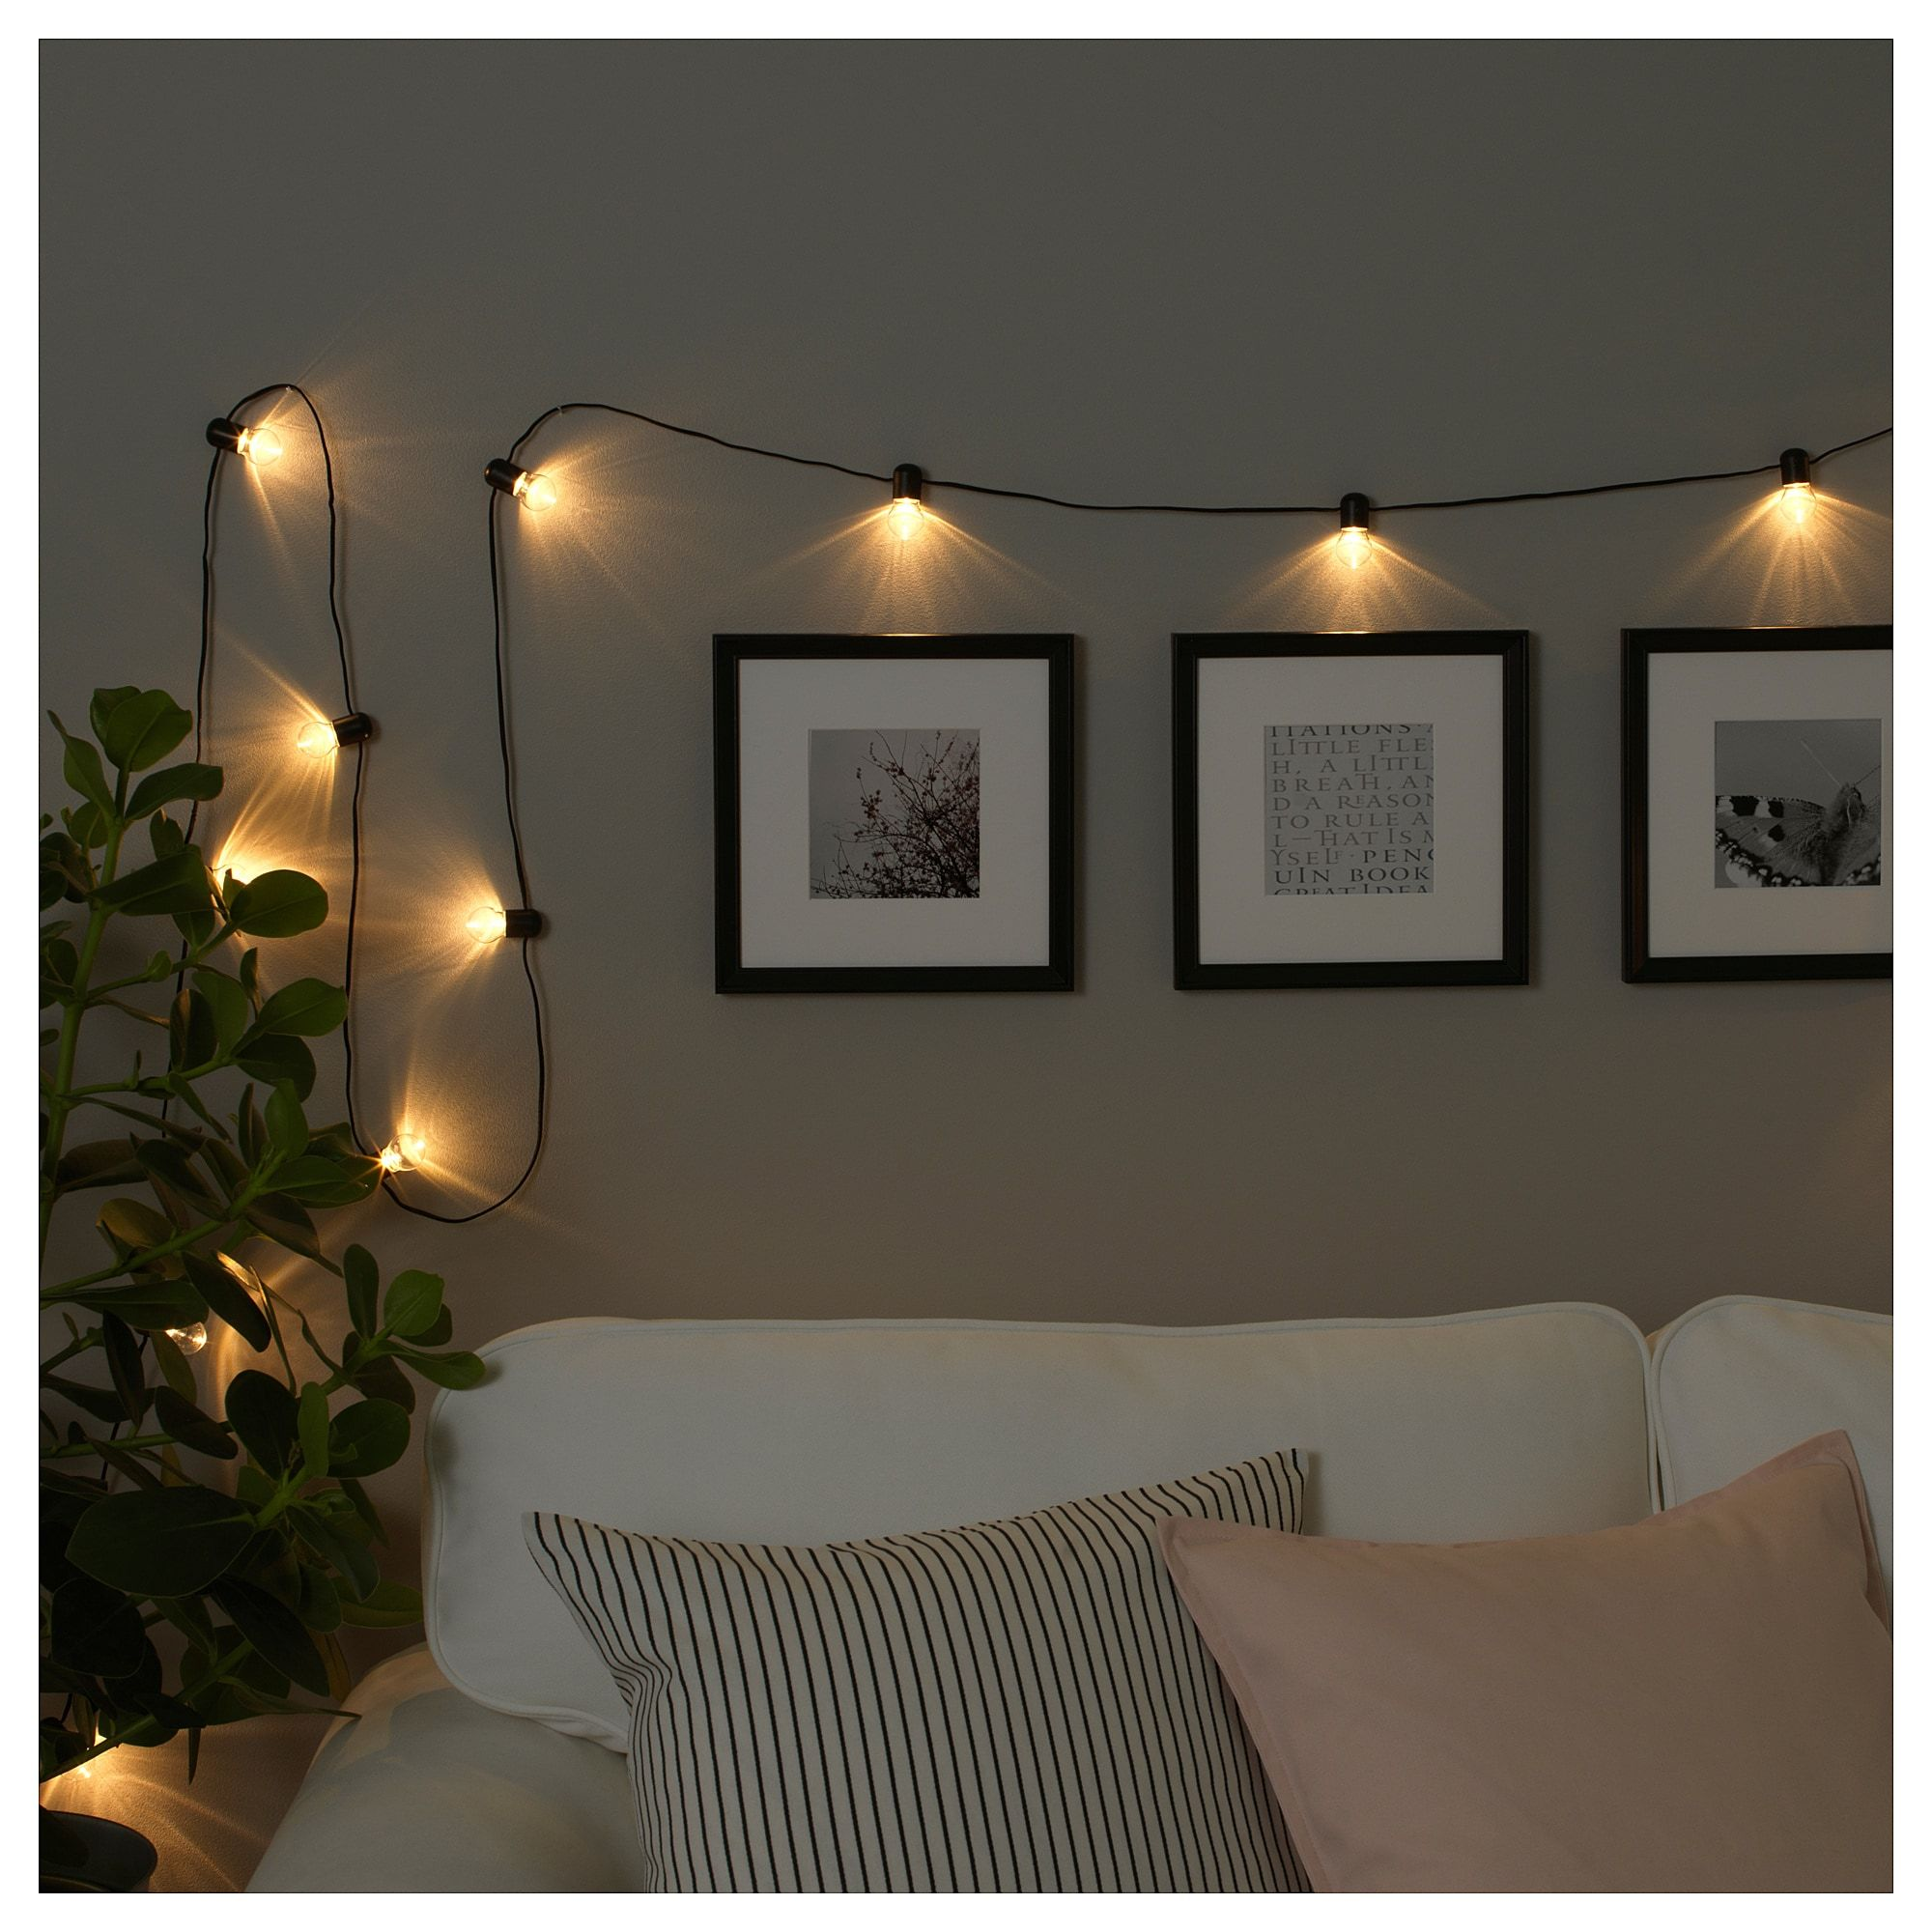 Ikea bl tsn led string light with 24 lights indoor - String lights for bedroom ...